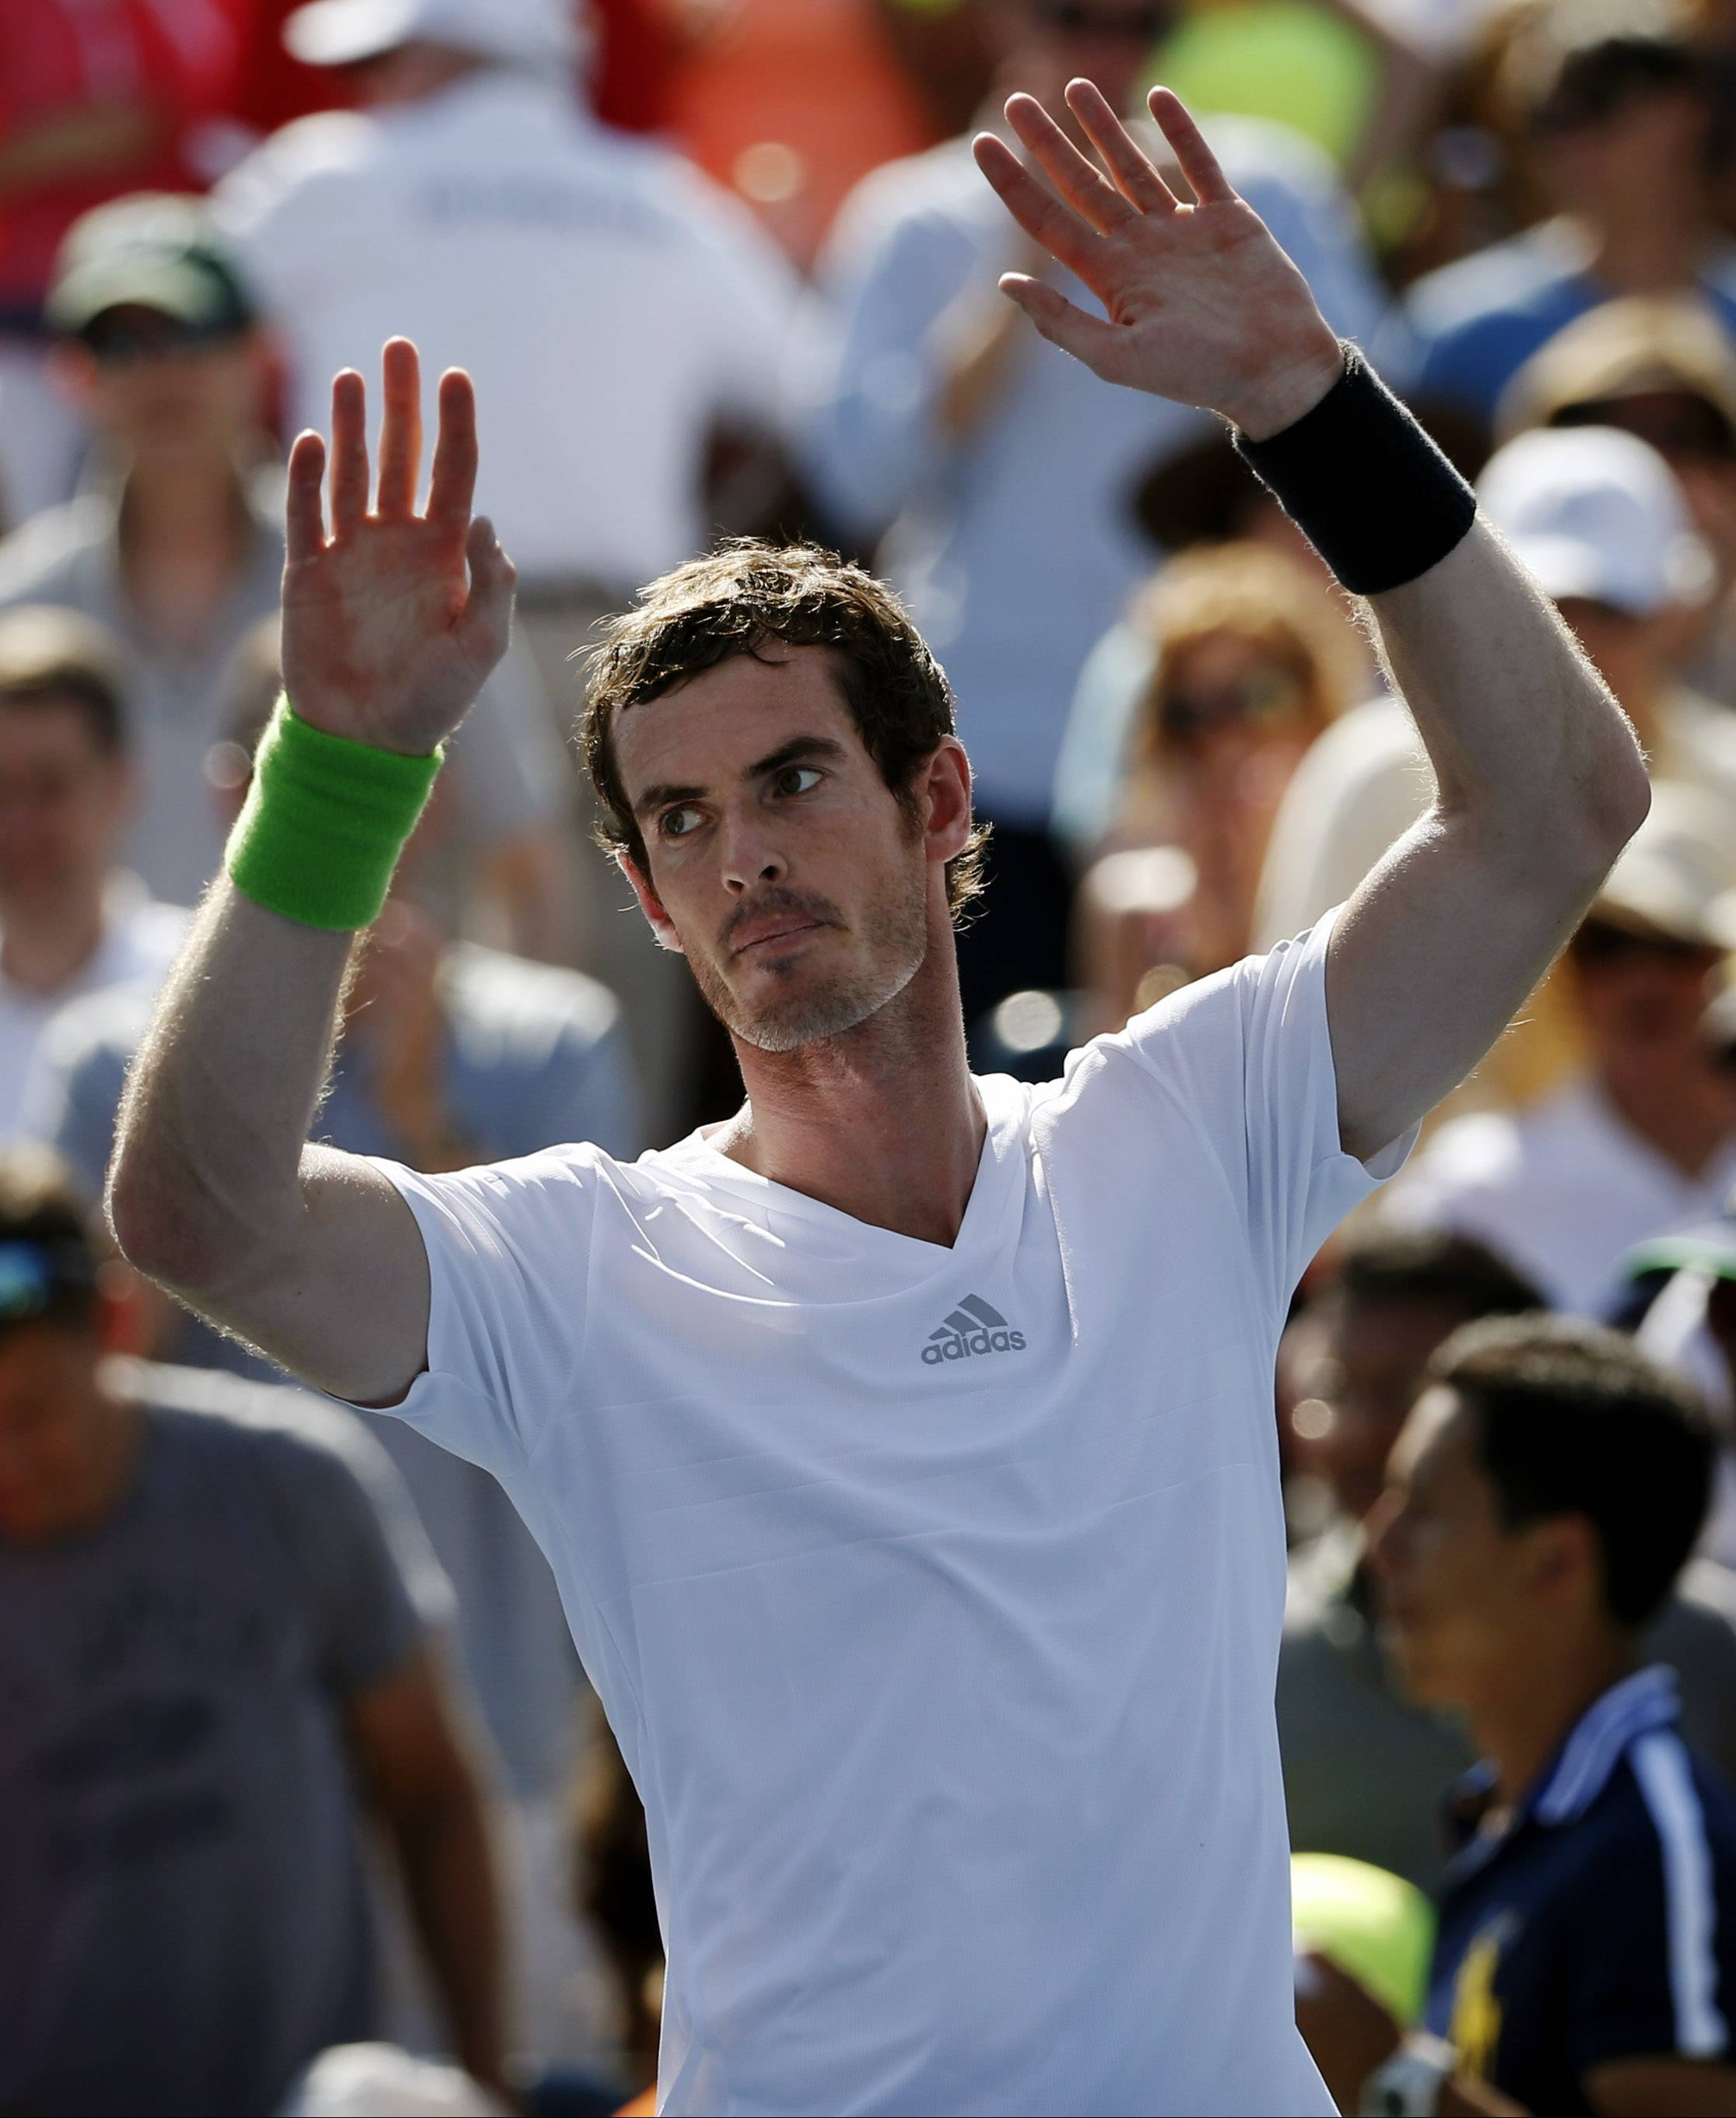 Andy Murray waves to the crowd after defeating Robin Haase on Monday during the opening round of the U.S. Open in New York.